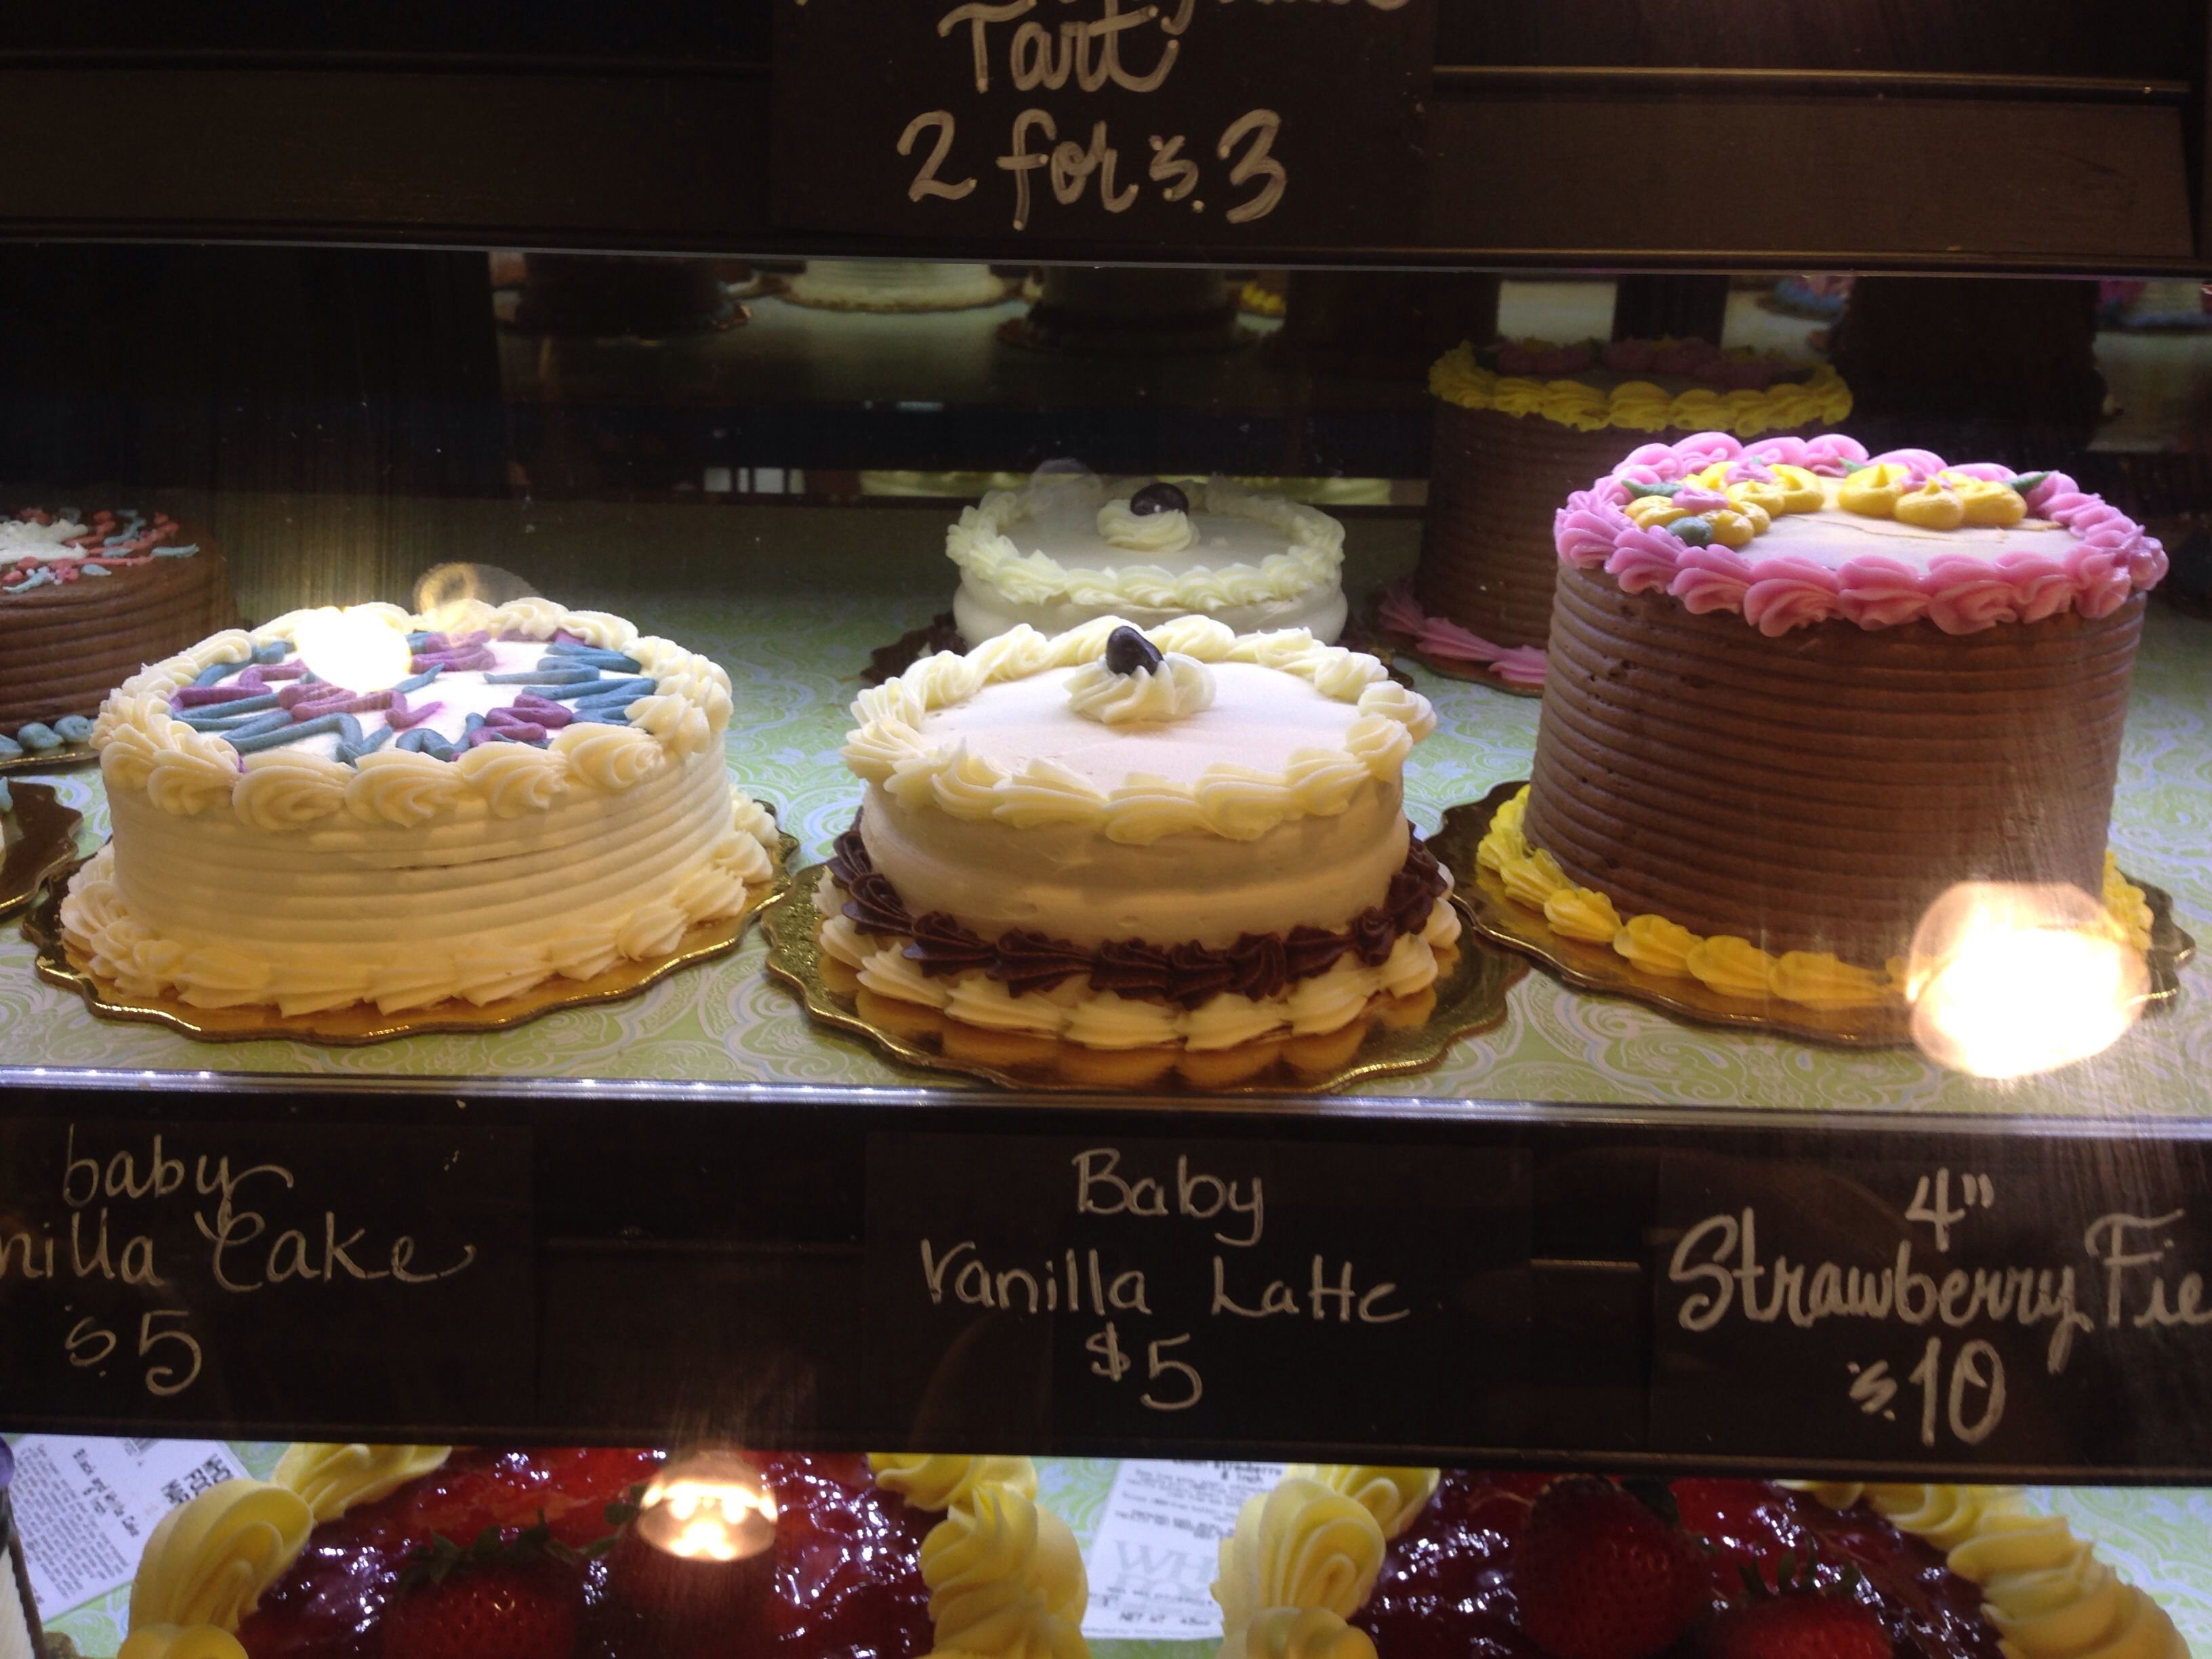 Perfect Sized Smash Cakes At Whole Foods